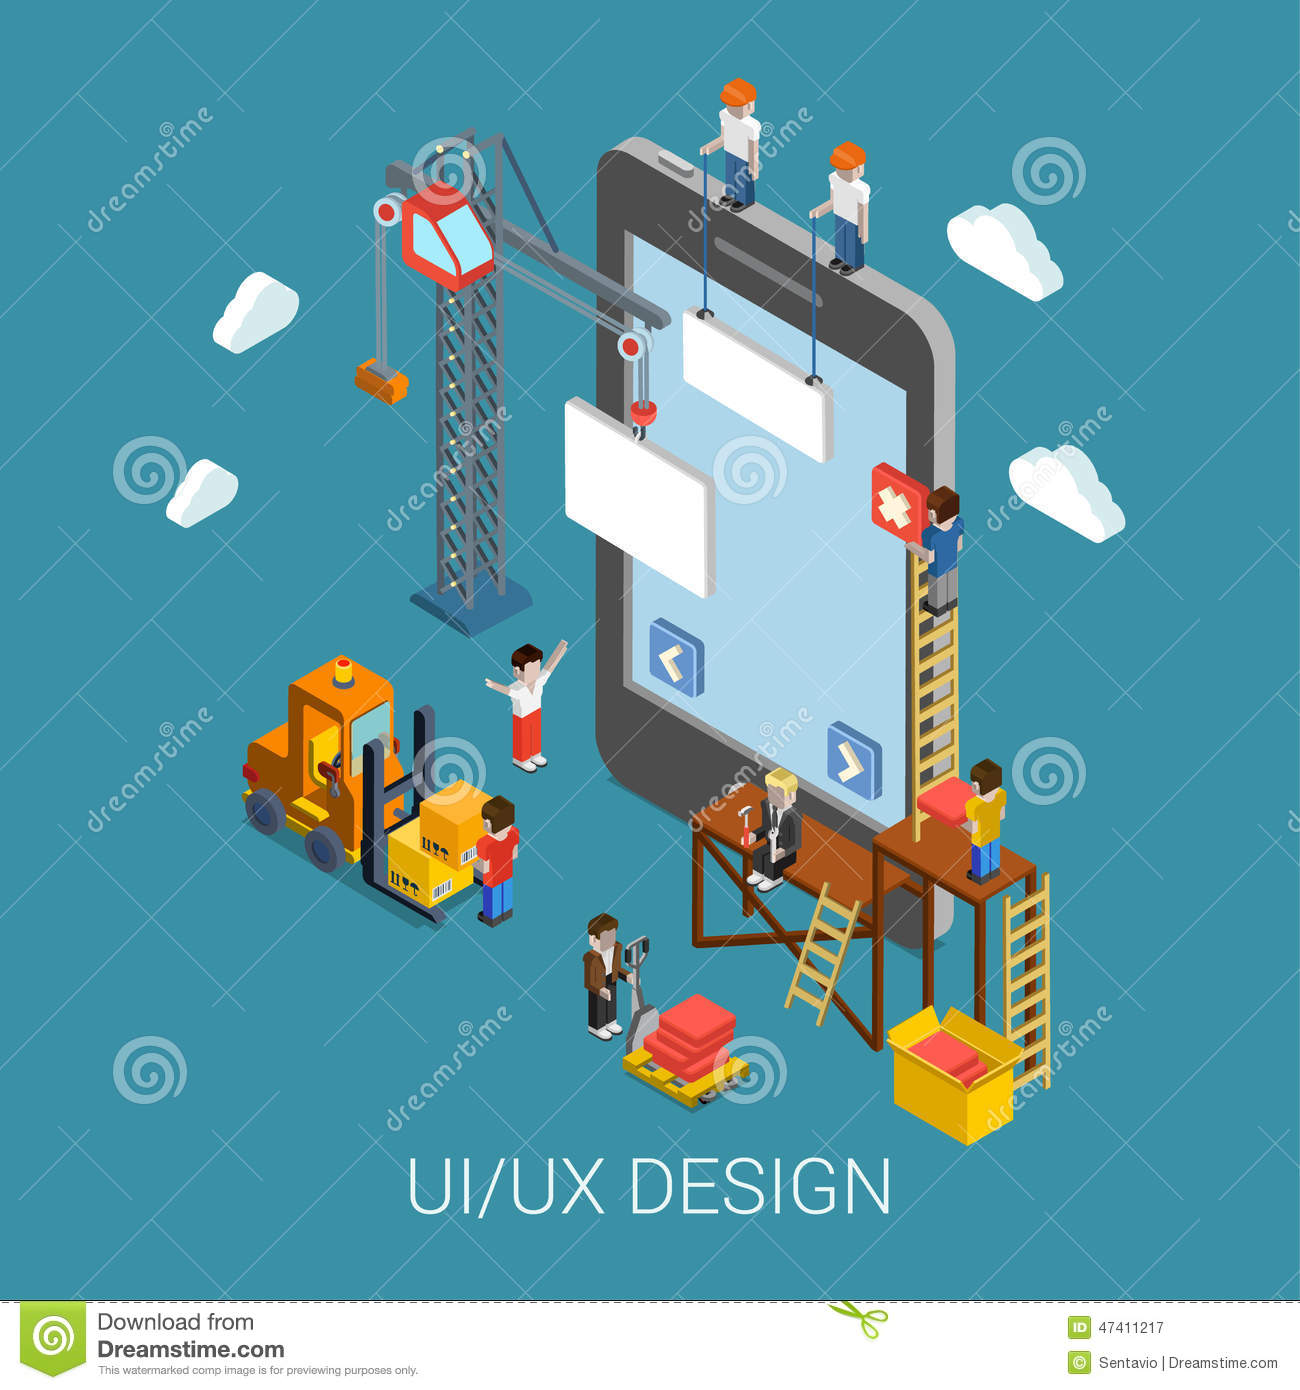 Flat 3d isometric ui ux design web infographic concept for 3d flat design online